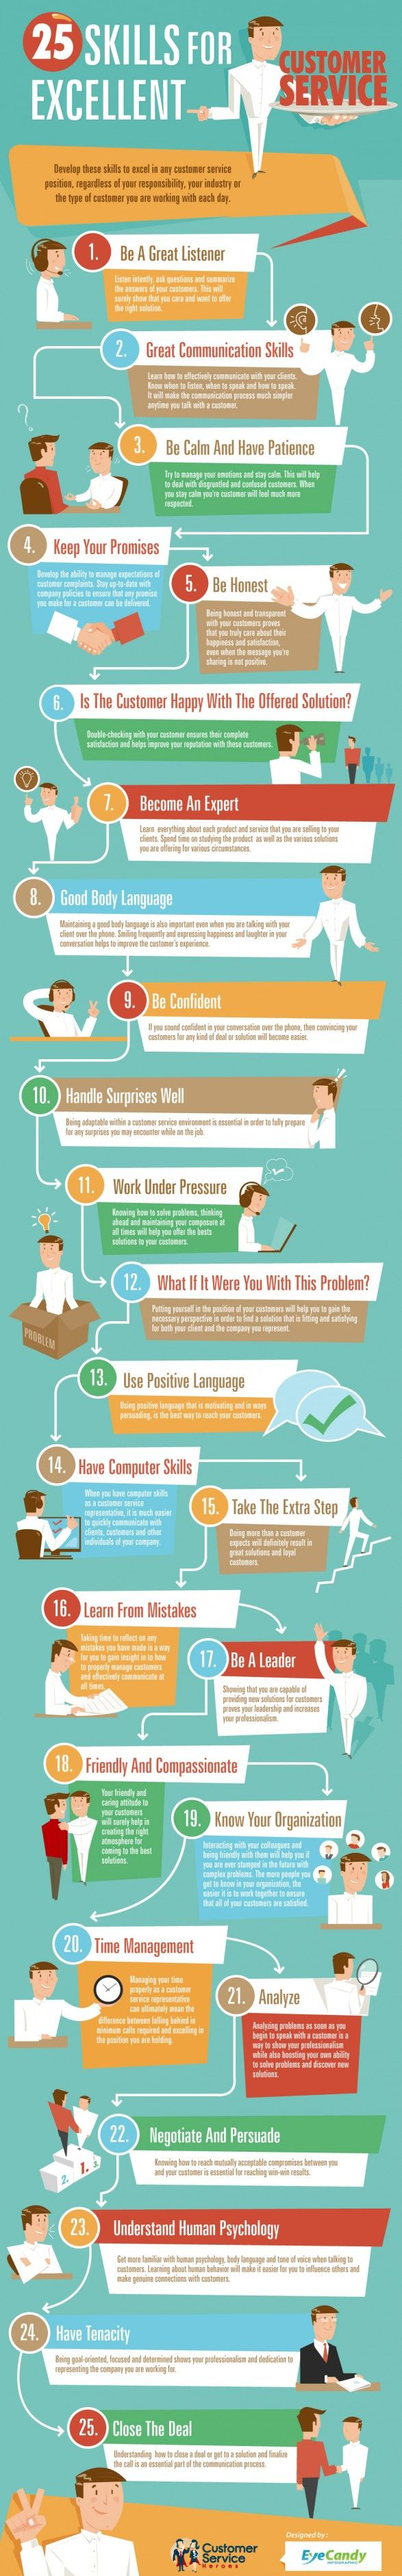 The Best 25 Ways To Deal With Customers.#businessadvice Visit : www.sourcepep.com/80-20-blog/